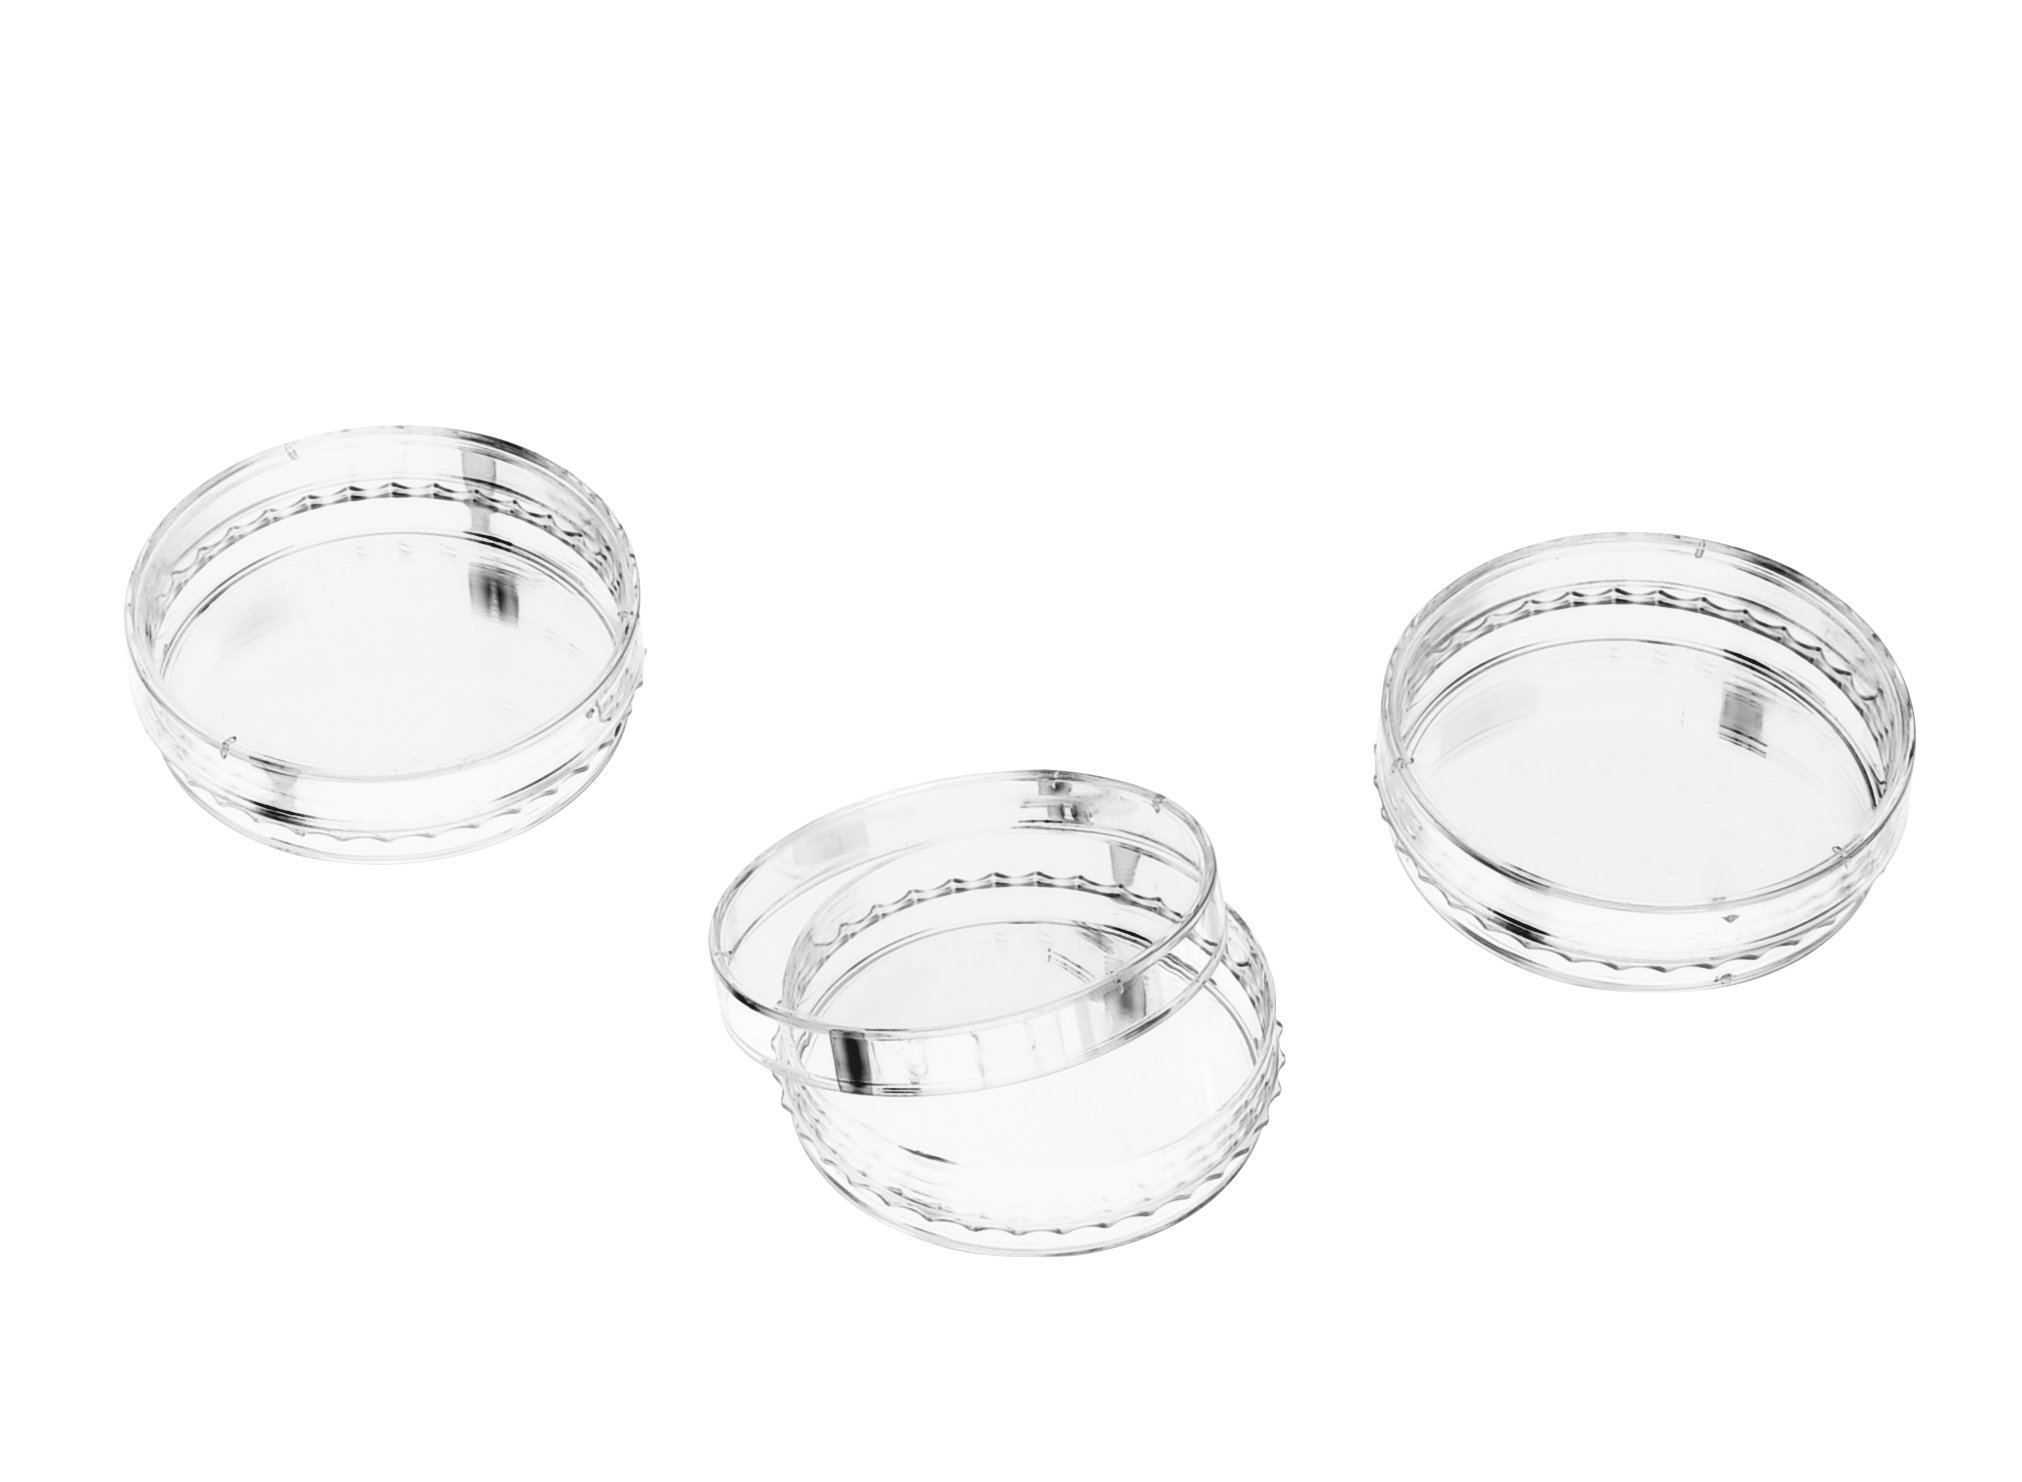 Biologix 07-3035 PS Cell Culture Dish (Pack of 500)